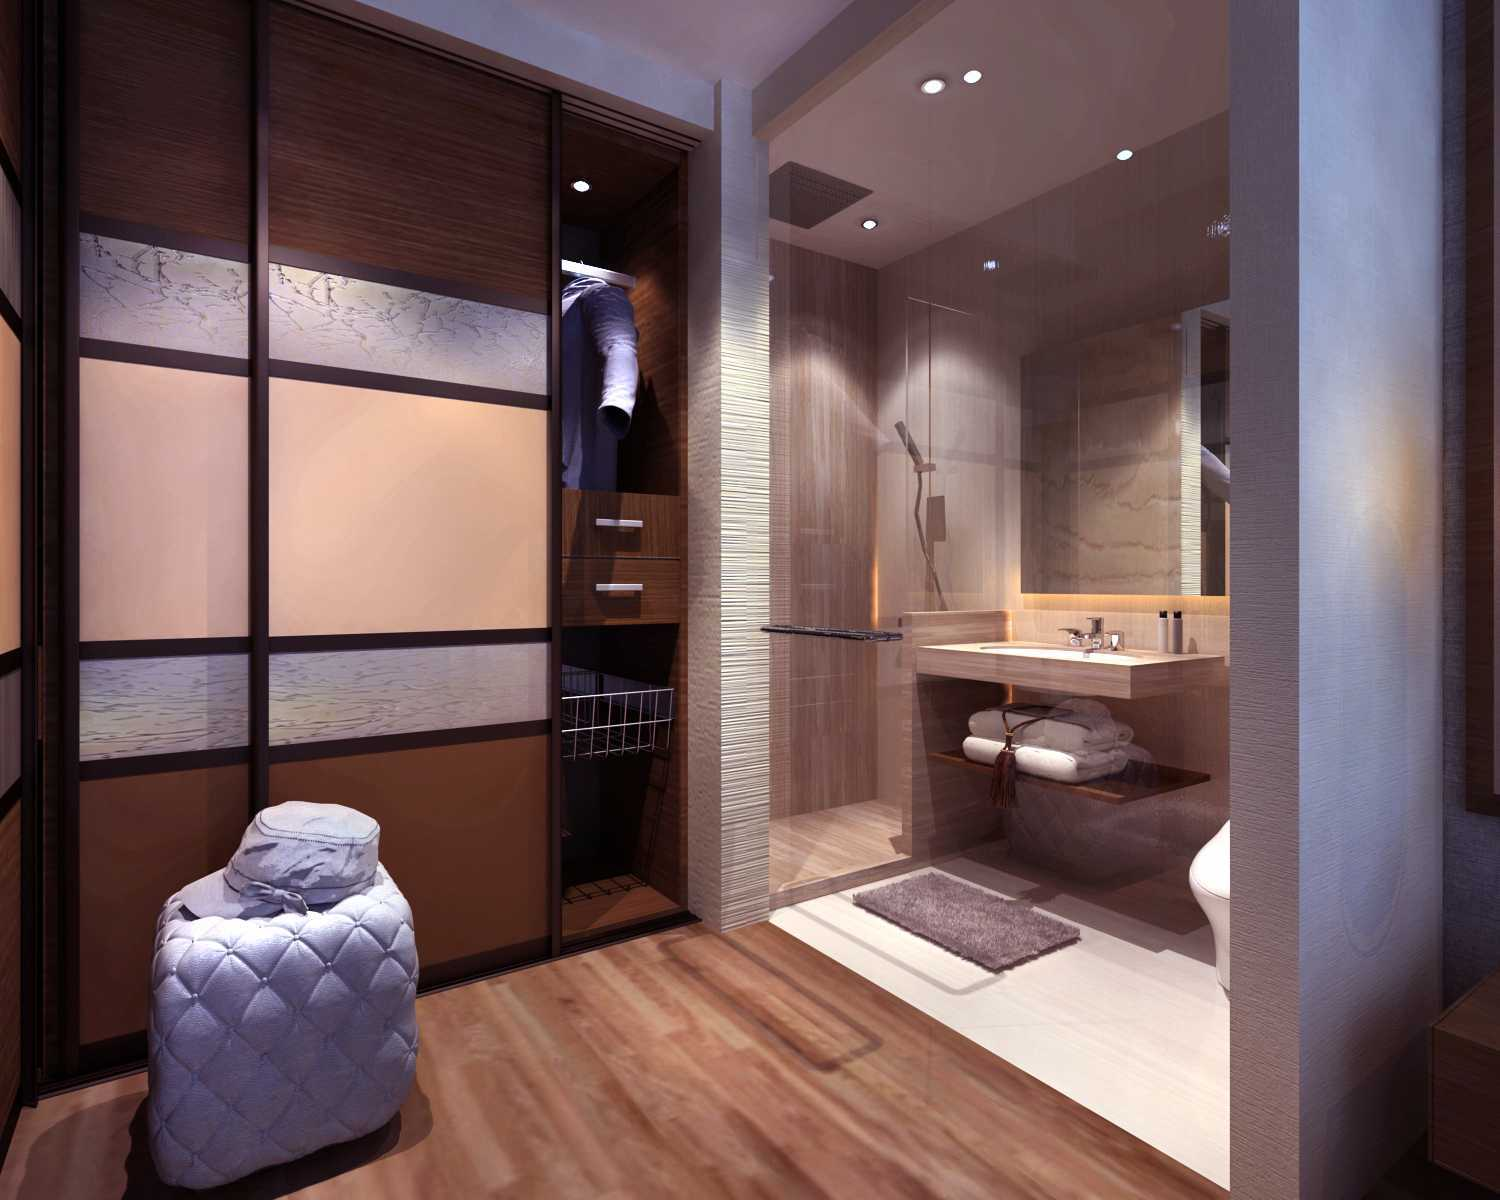 Rinto Katili Industrial Style Apartment Jakarta Jakarta Walking-Closet-And-Master-Bathroom Industrial 32501